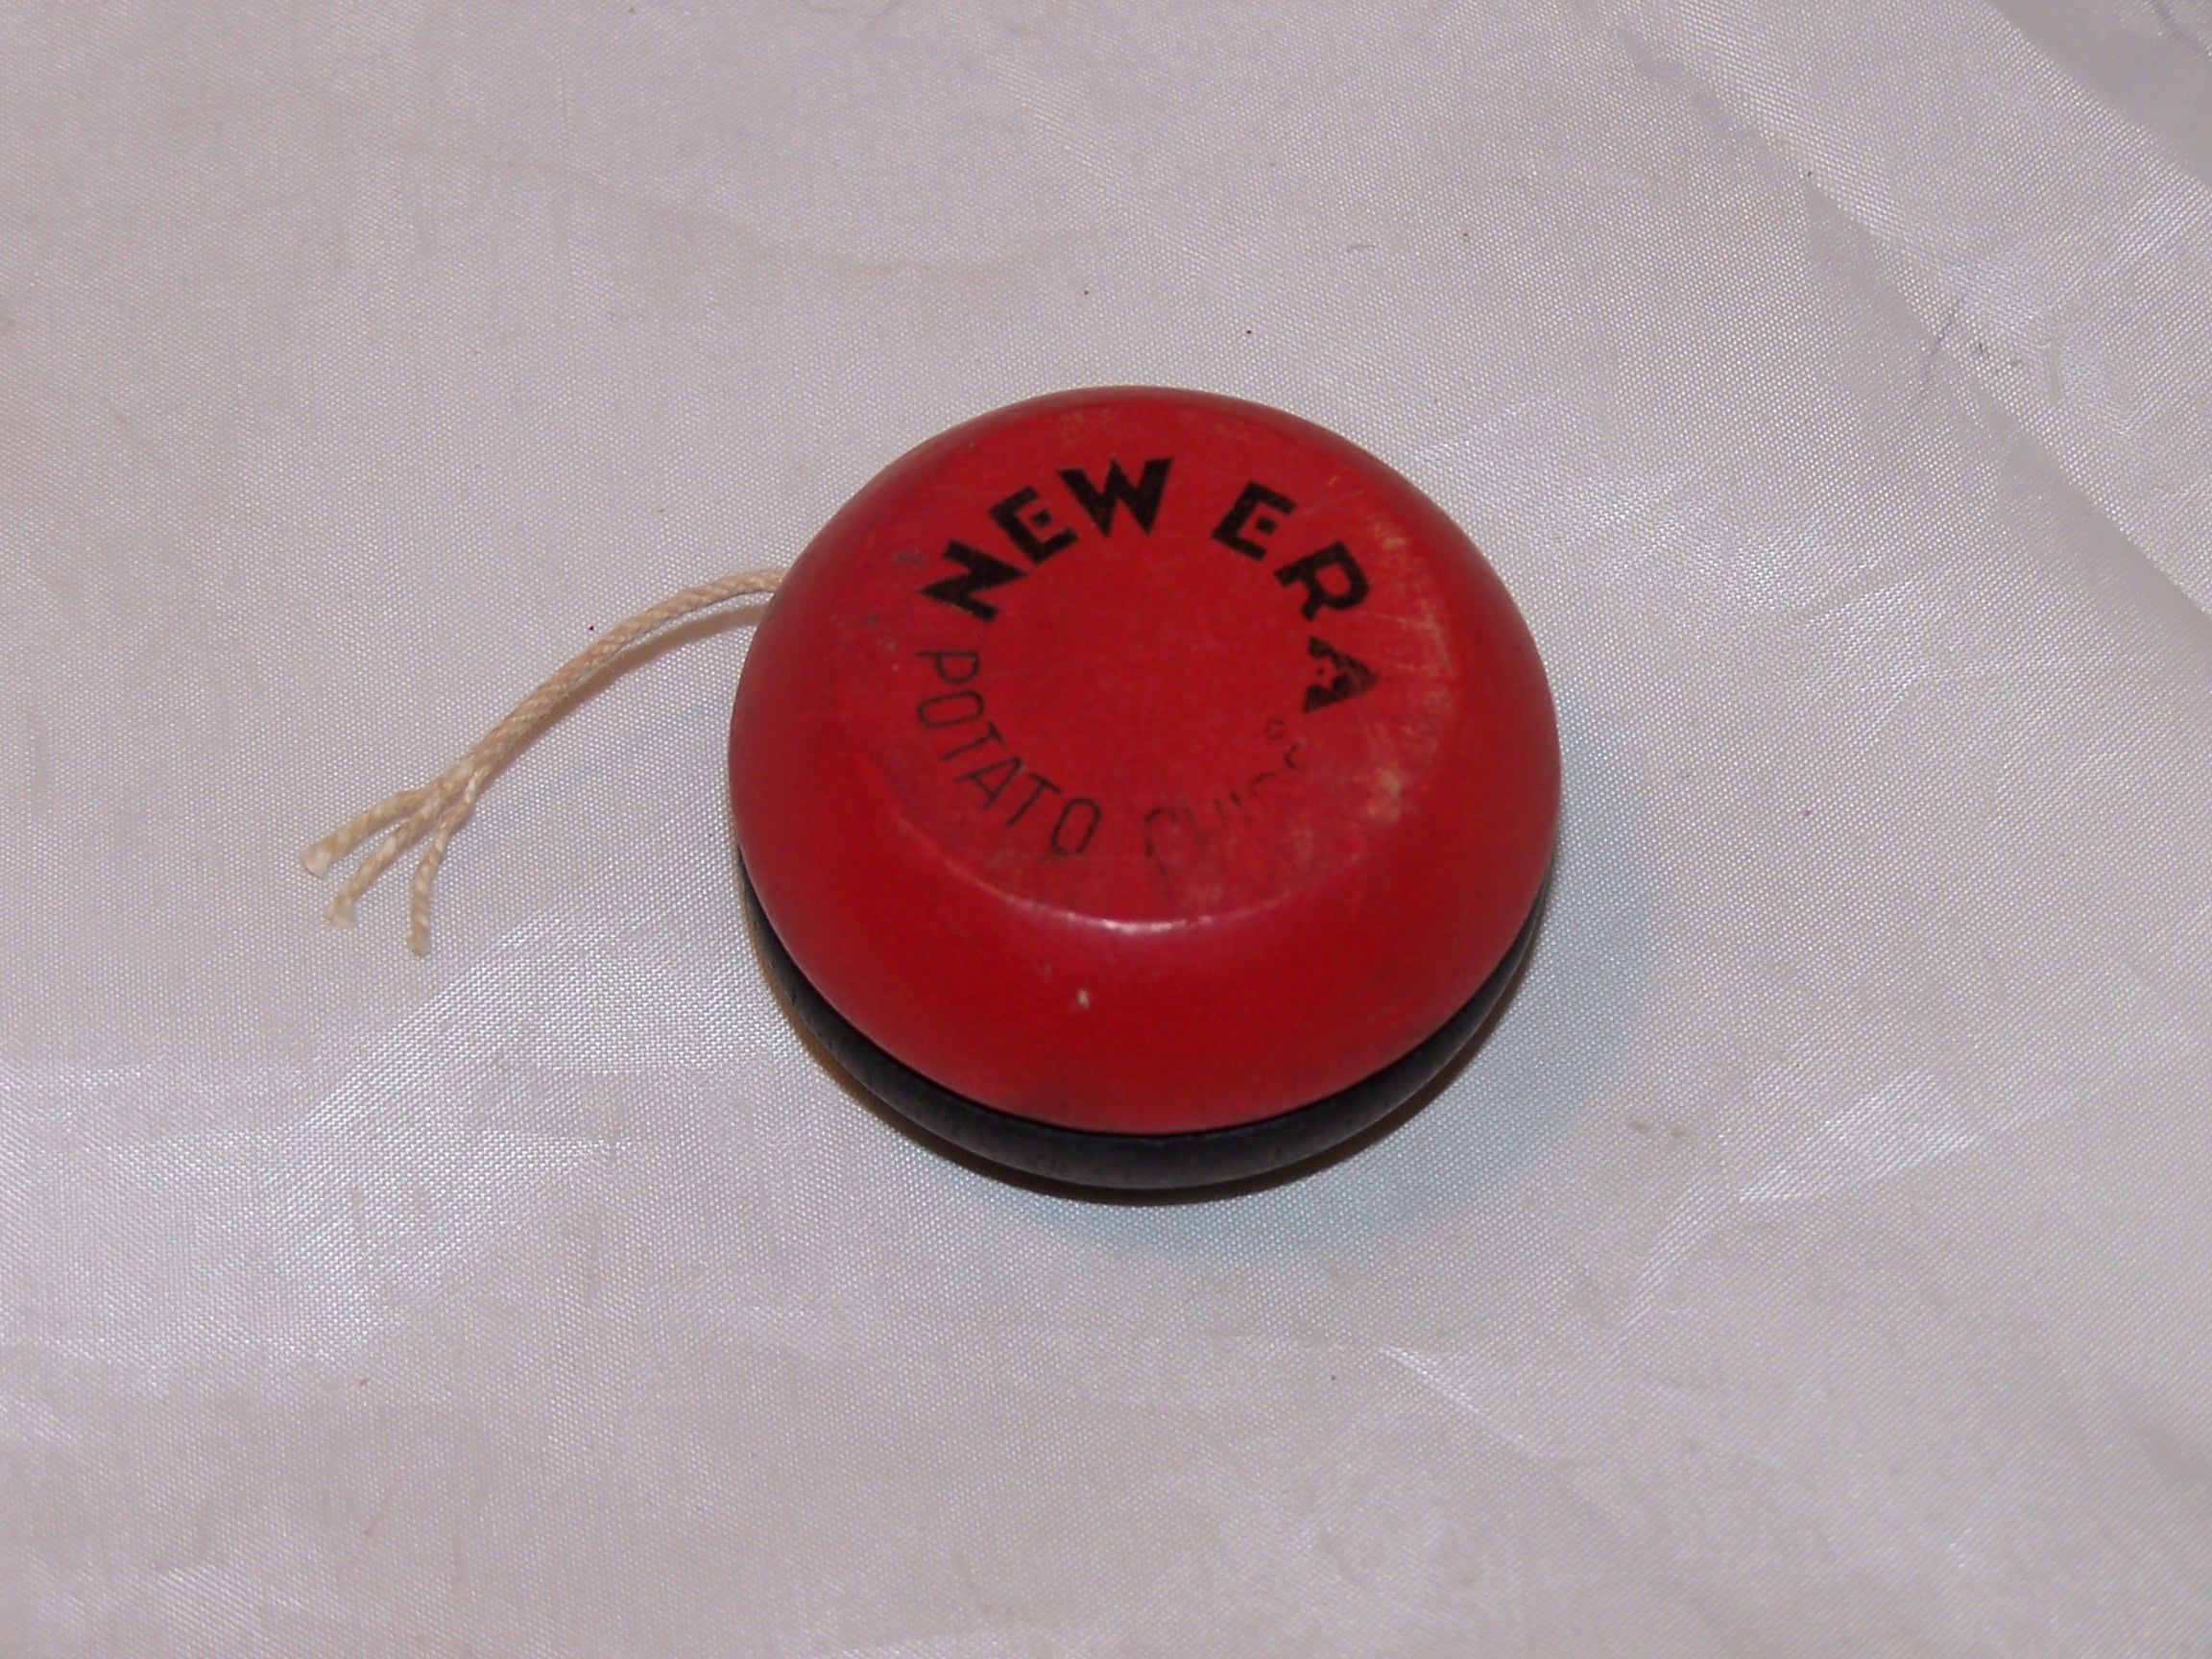 New Era Potato Chip Yoyo